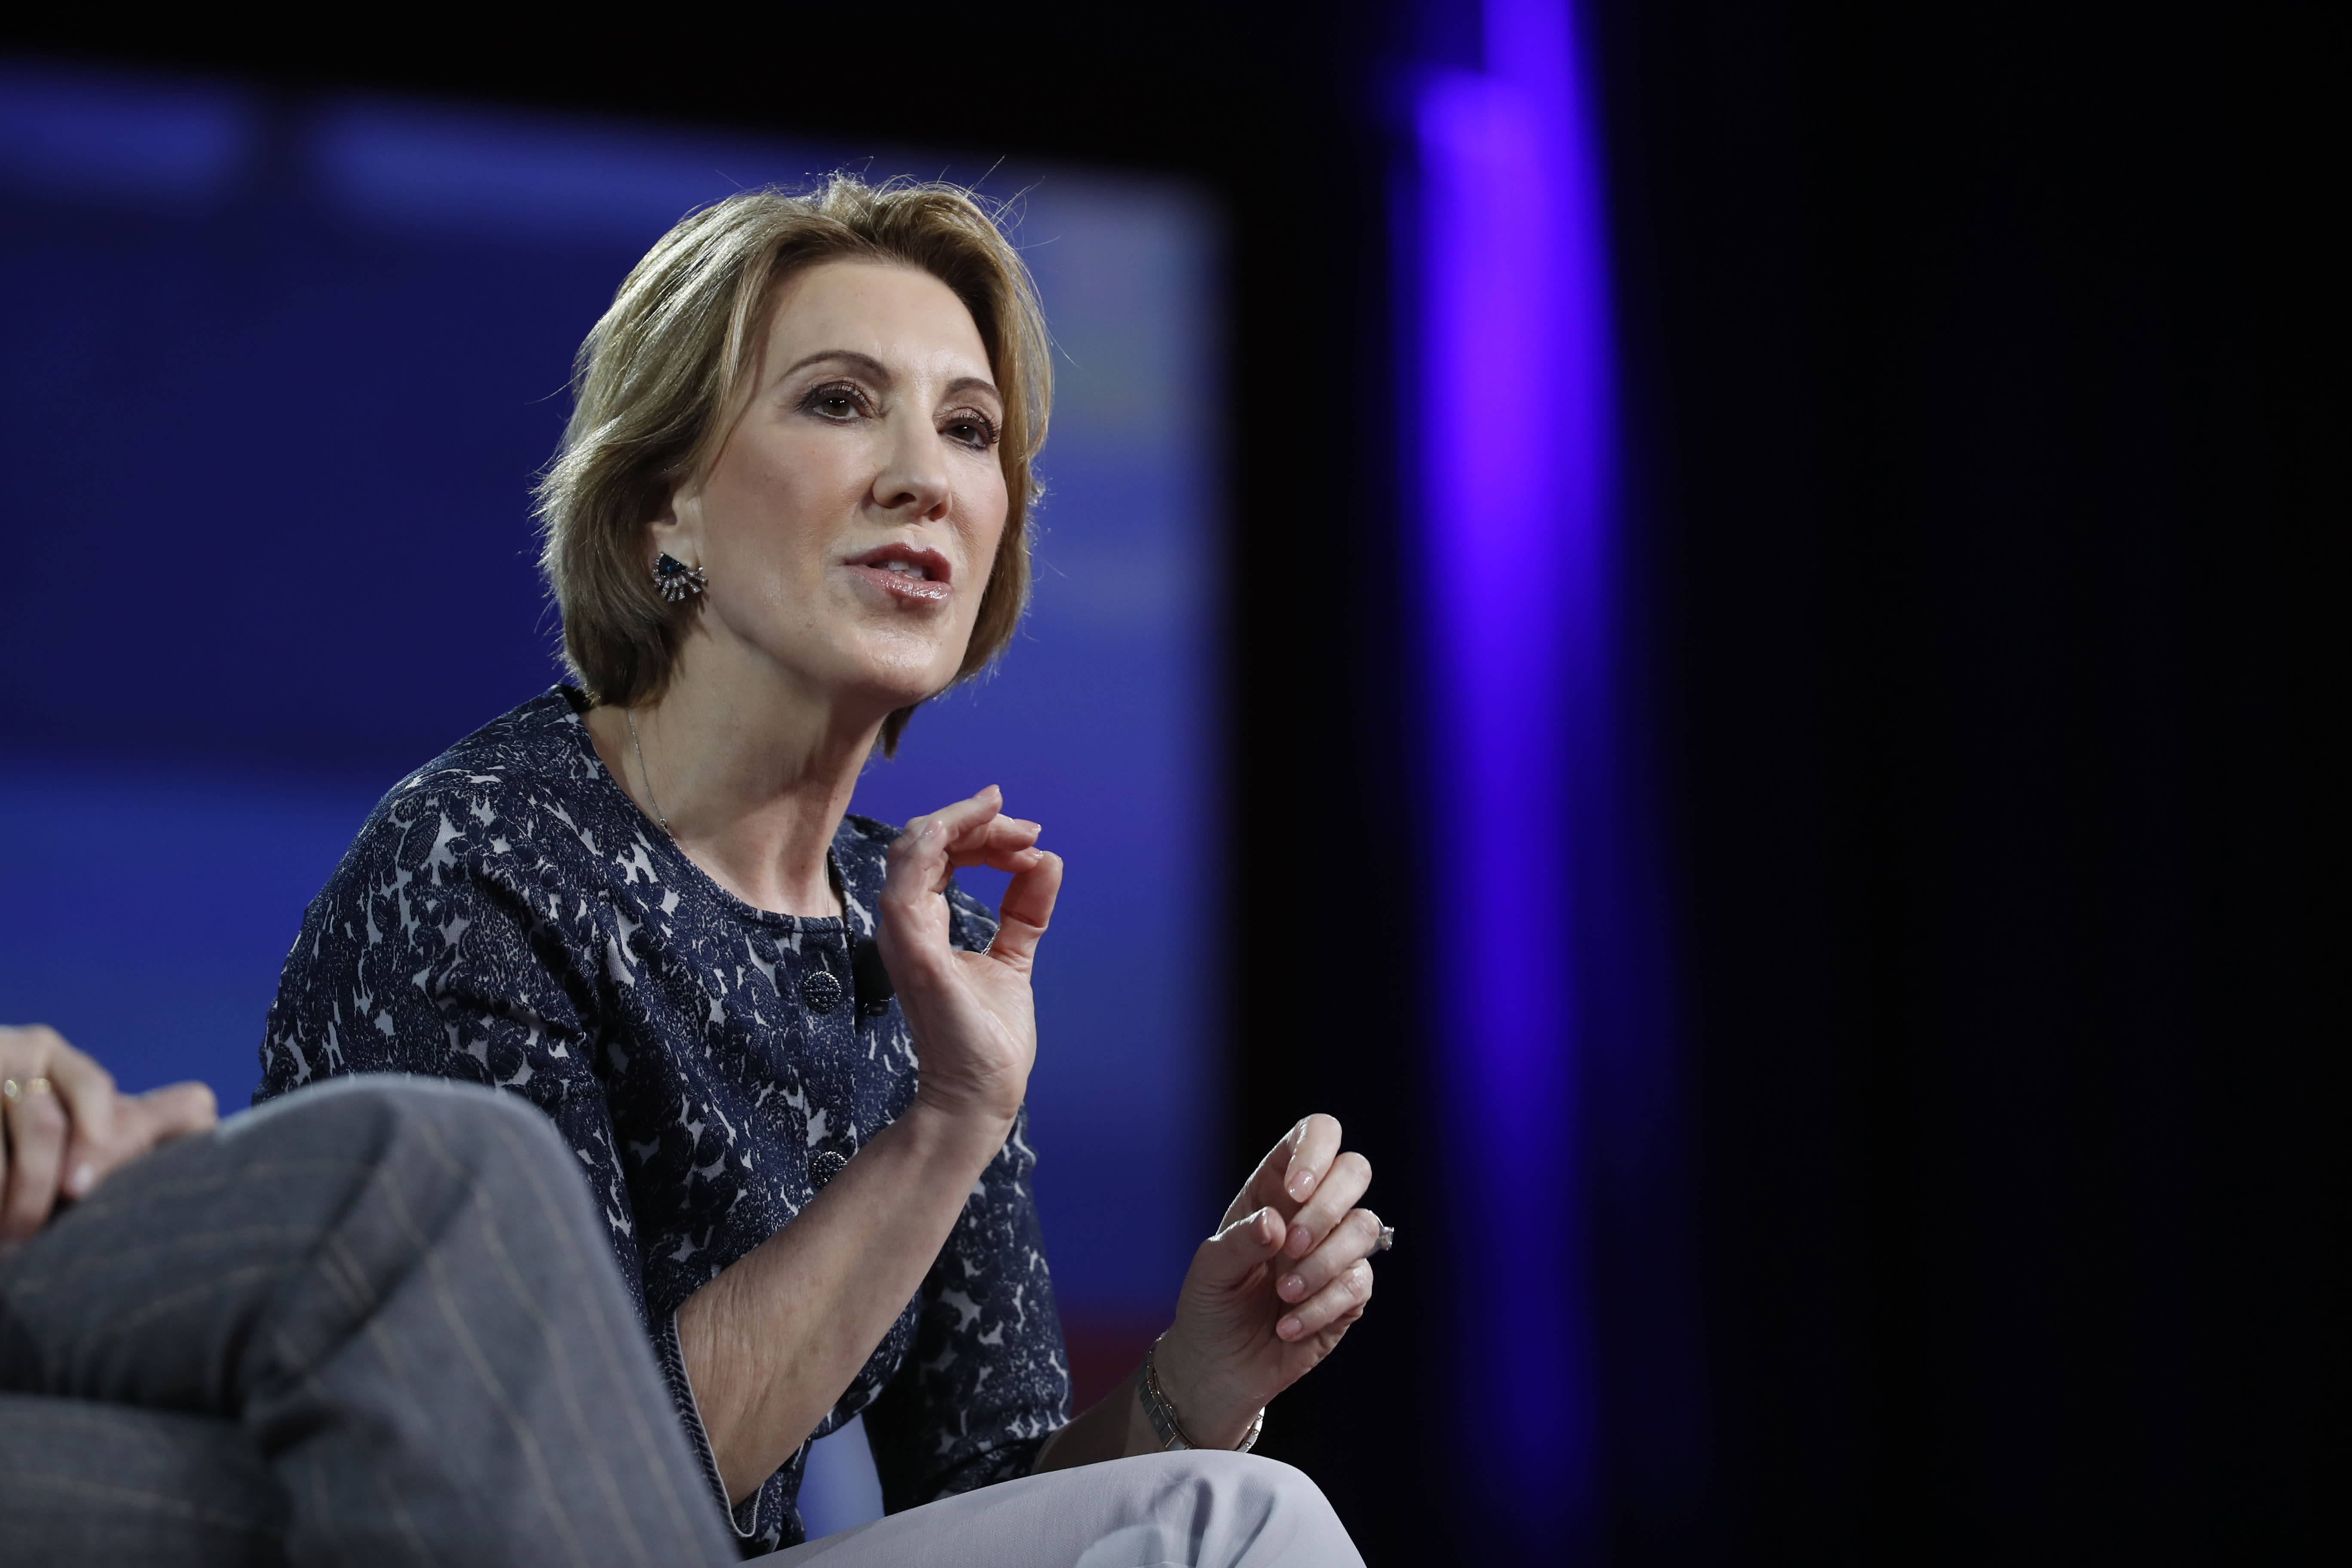 """FILE - In this Feb. 24, file photo, Carly Fiorina speaks at the Conservative Political Action Conference (CPAC), in Oxon Hill, Md. When President Donald Trump called porn actress Stormy Daniels """"horseface"""" on Twitter, he added to his long list of creative, some say misogynistic, descriptions for women. A look at how Trump's words, and his attitude, might play out three weeks before an election that features a record number of women candidates. (AP Photo/Alex Brandon, File)"""